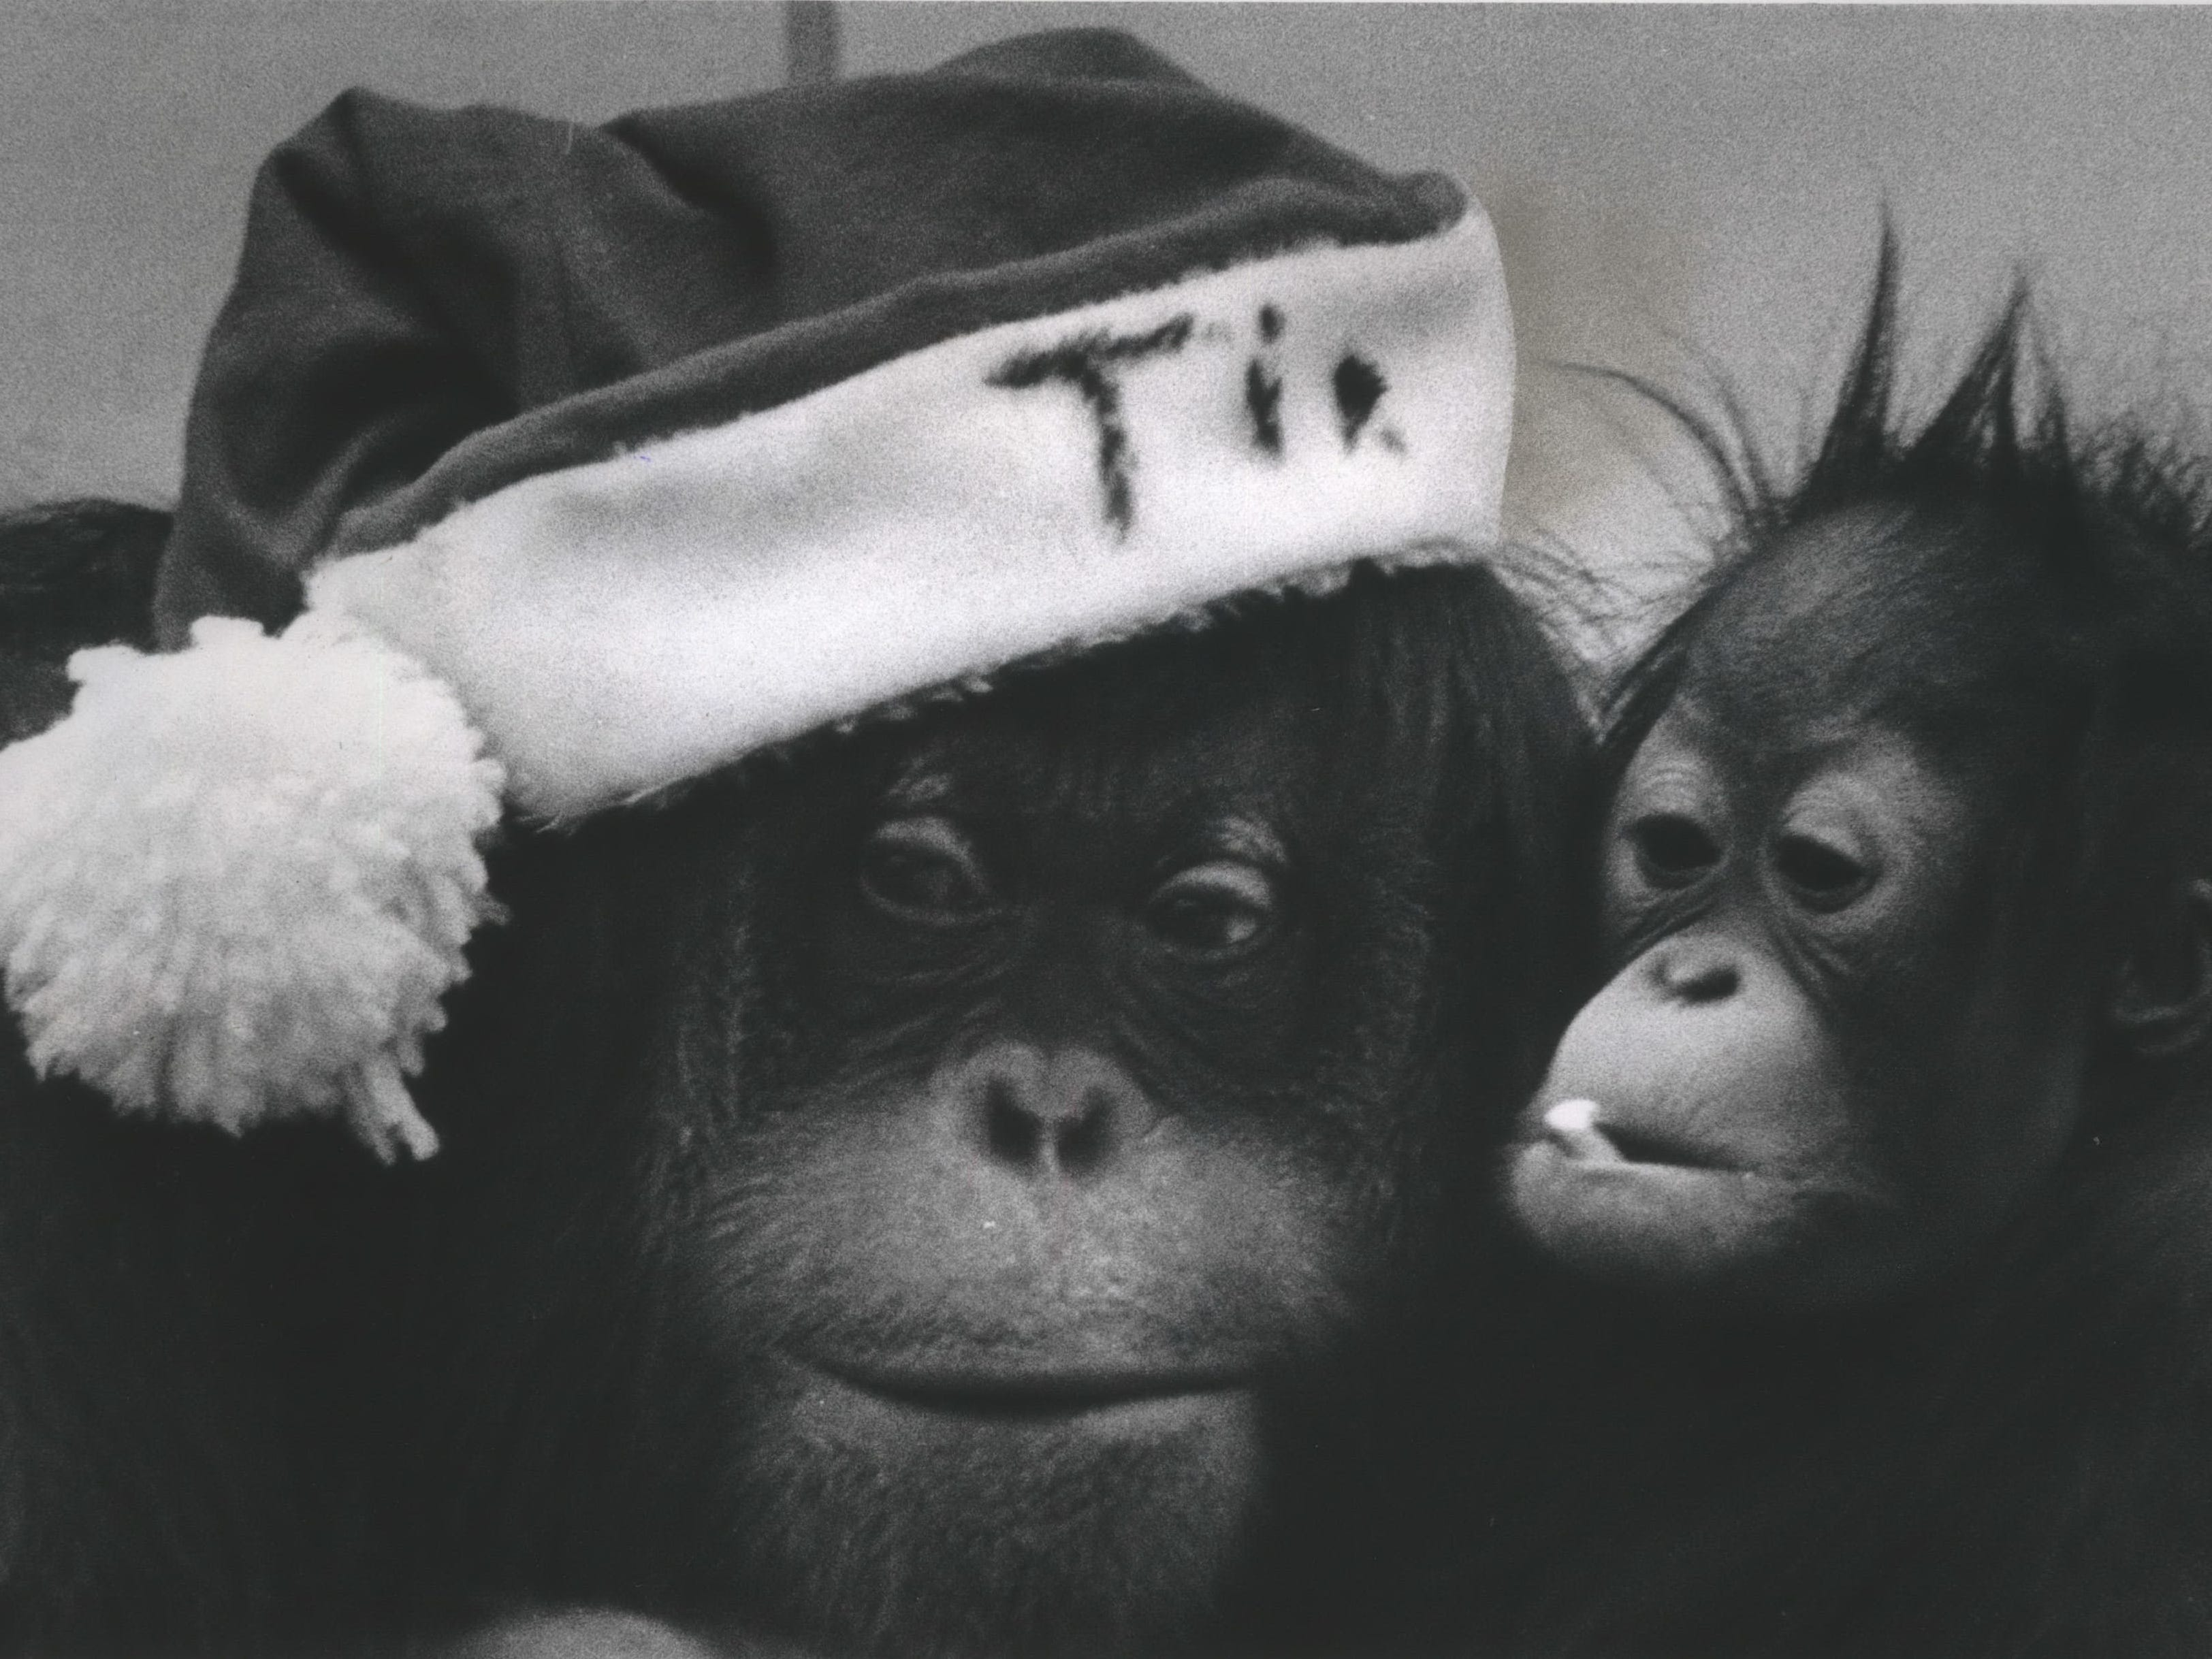 An orangutan named Tia plays Santa Claus as she introduces her baby, Dick, to the Christmas season at the Milwaukee County Zoo on Dec. 17, 1968. The youngster, born in January 1968, got a peppermint cane for his holiday treat. This photo was published in the Dec. 18, 1968, Milwaukee Journal.